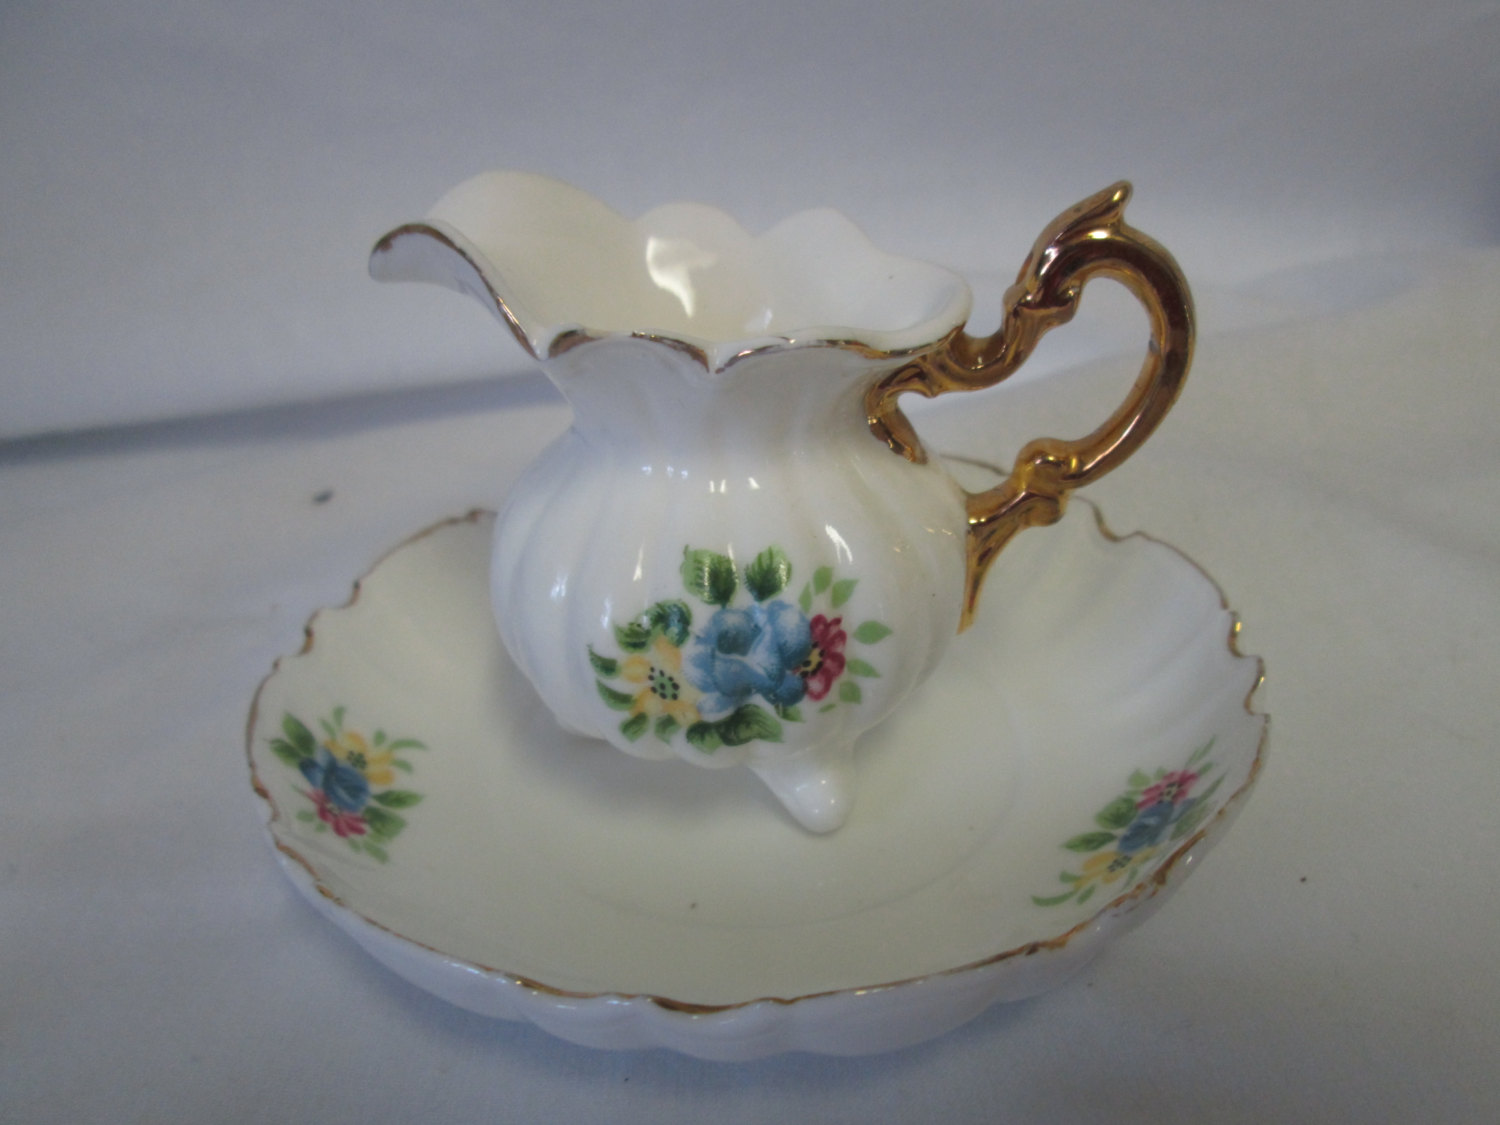 Beautiful Miniatrue pitcher and plate fine bone china floral trimmed in gold Mid century gold handle footed pitcher scalloped plate